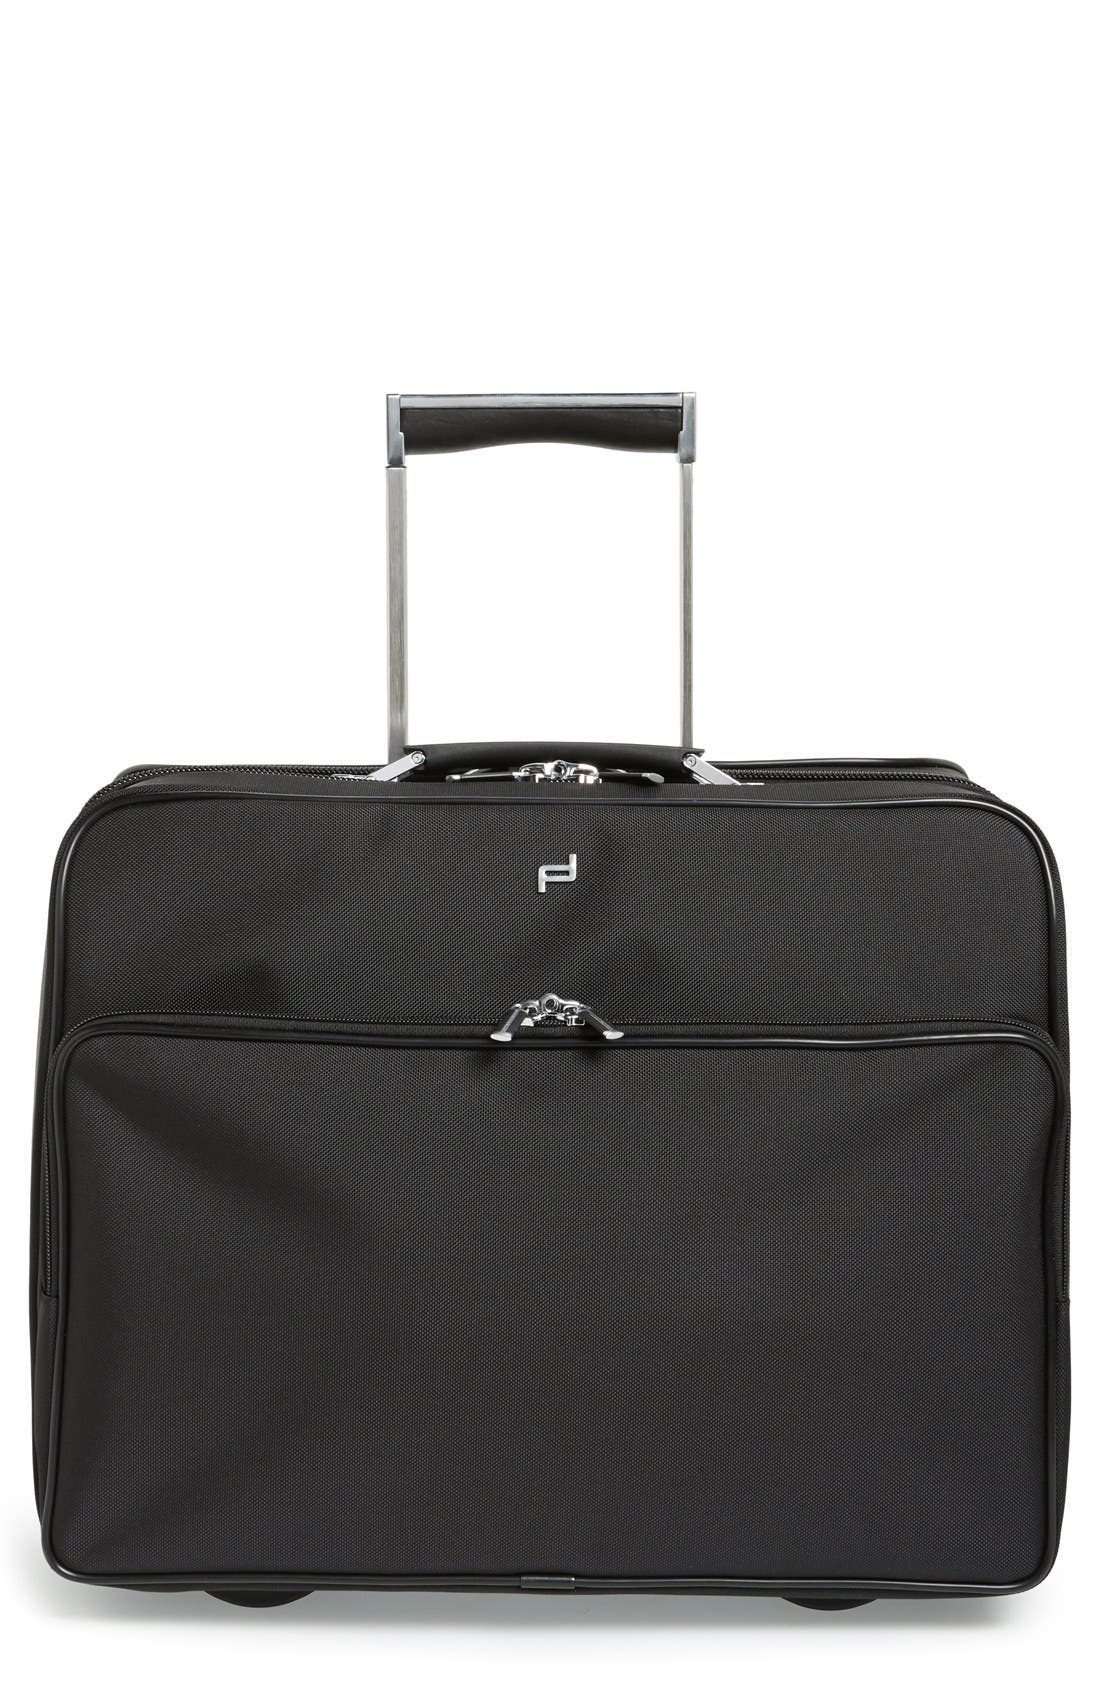 'Roadster 3.0' Wheeled Carry-On,                         Main,                         color, 001